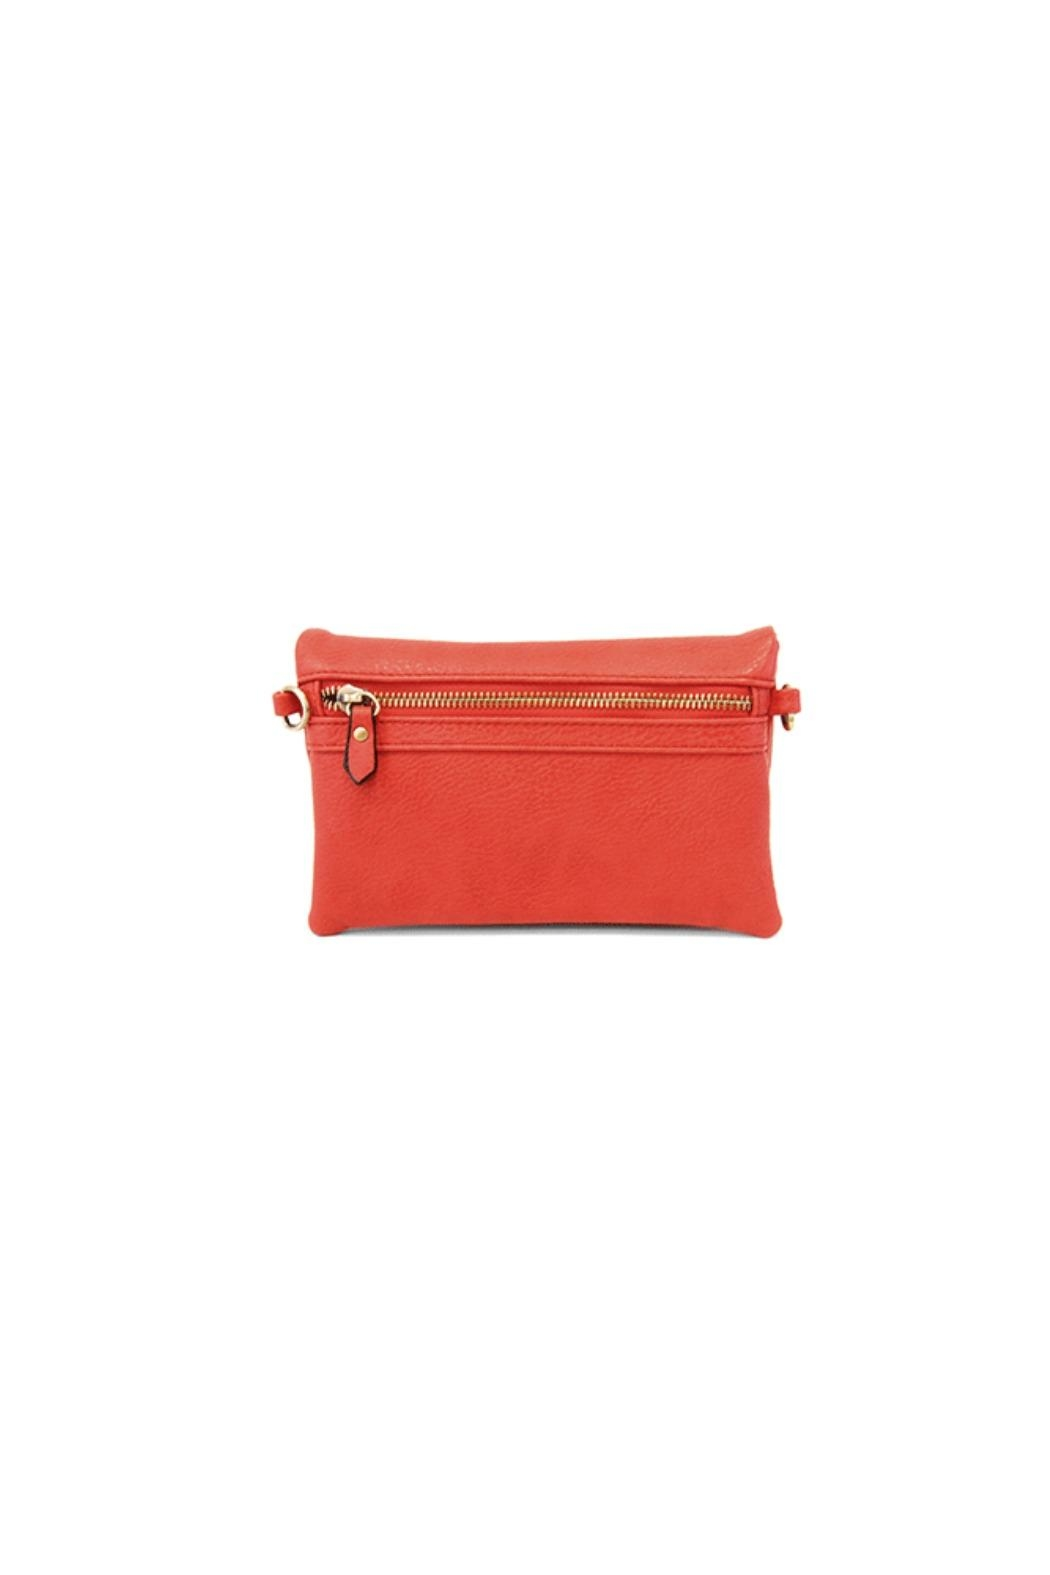 Joy Susan Accessories Kate Crossbody Clutch - Side Cropped Image